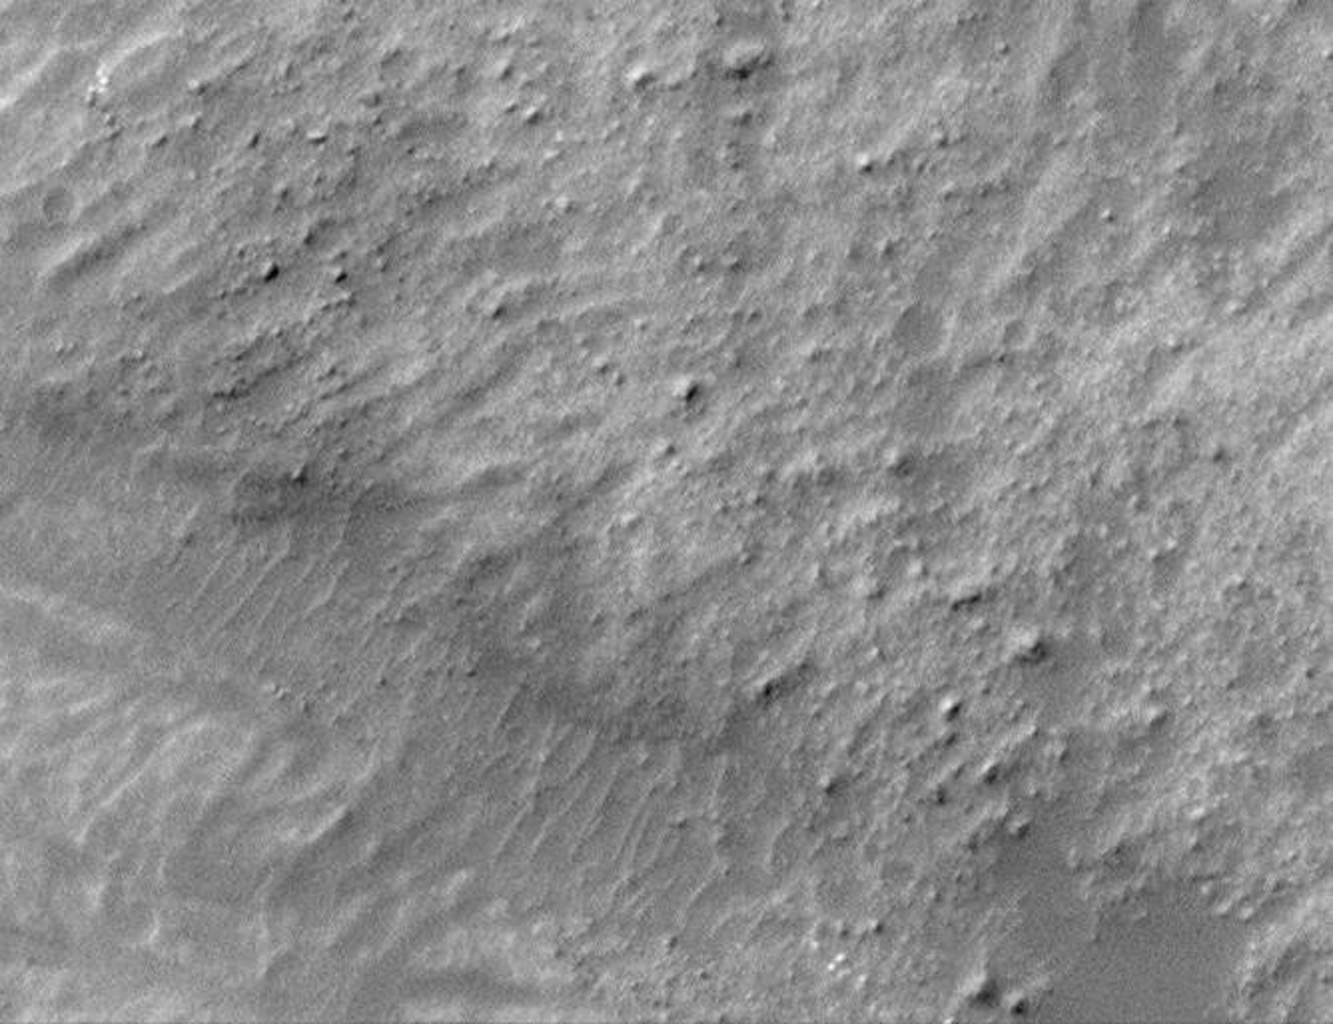 This image from NASA's Mars Global Surveyor shows a field of boulders on the surface of a landslide deposit in Ganges Chasma. Ganges Chasma is one of the valleys in the Valles Marineris canyon system on Mars.